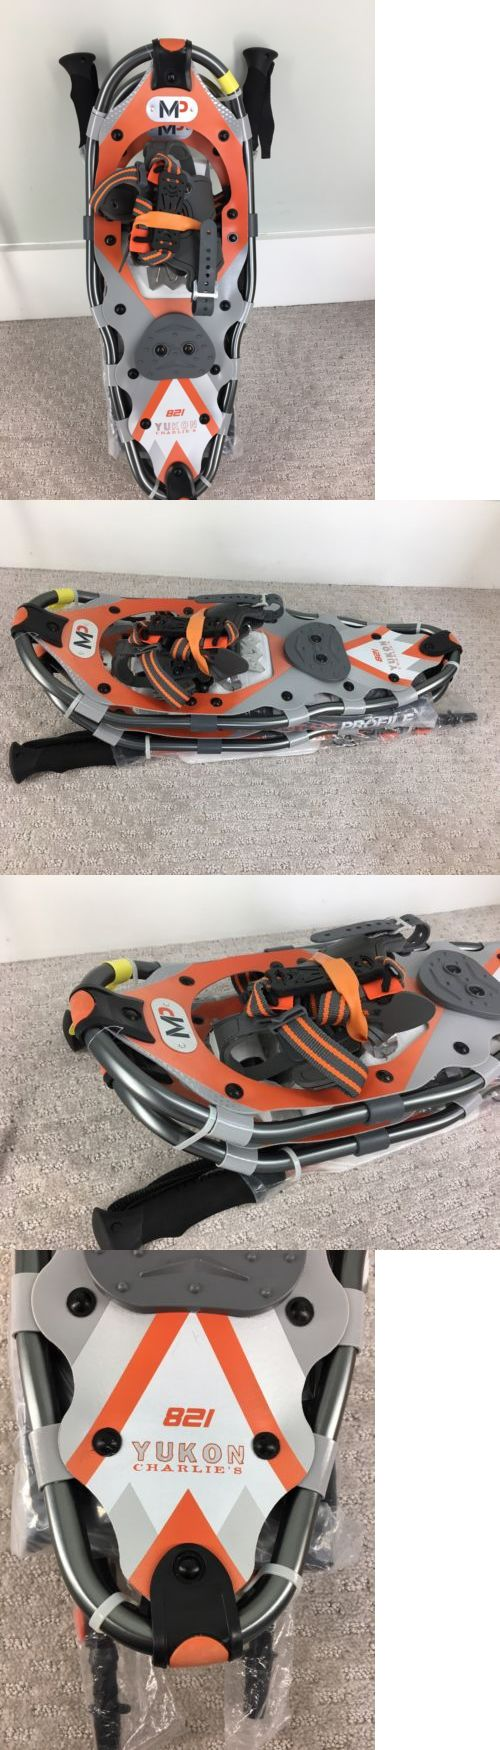 Snowshoeing 58136: New Yukon Charlie S 8 X 21 821 Snowshoe Kit W Hiking Poles And Carry Bag - Orange -> BUY IT NOW ONLY: $60 on eBay!